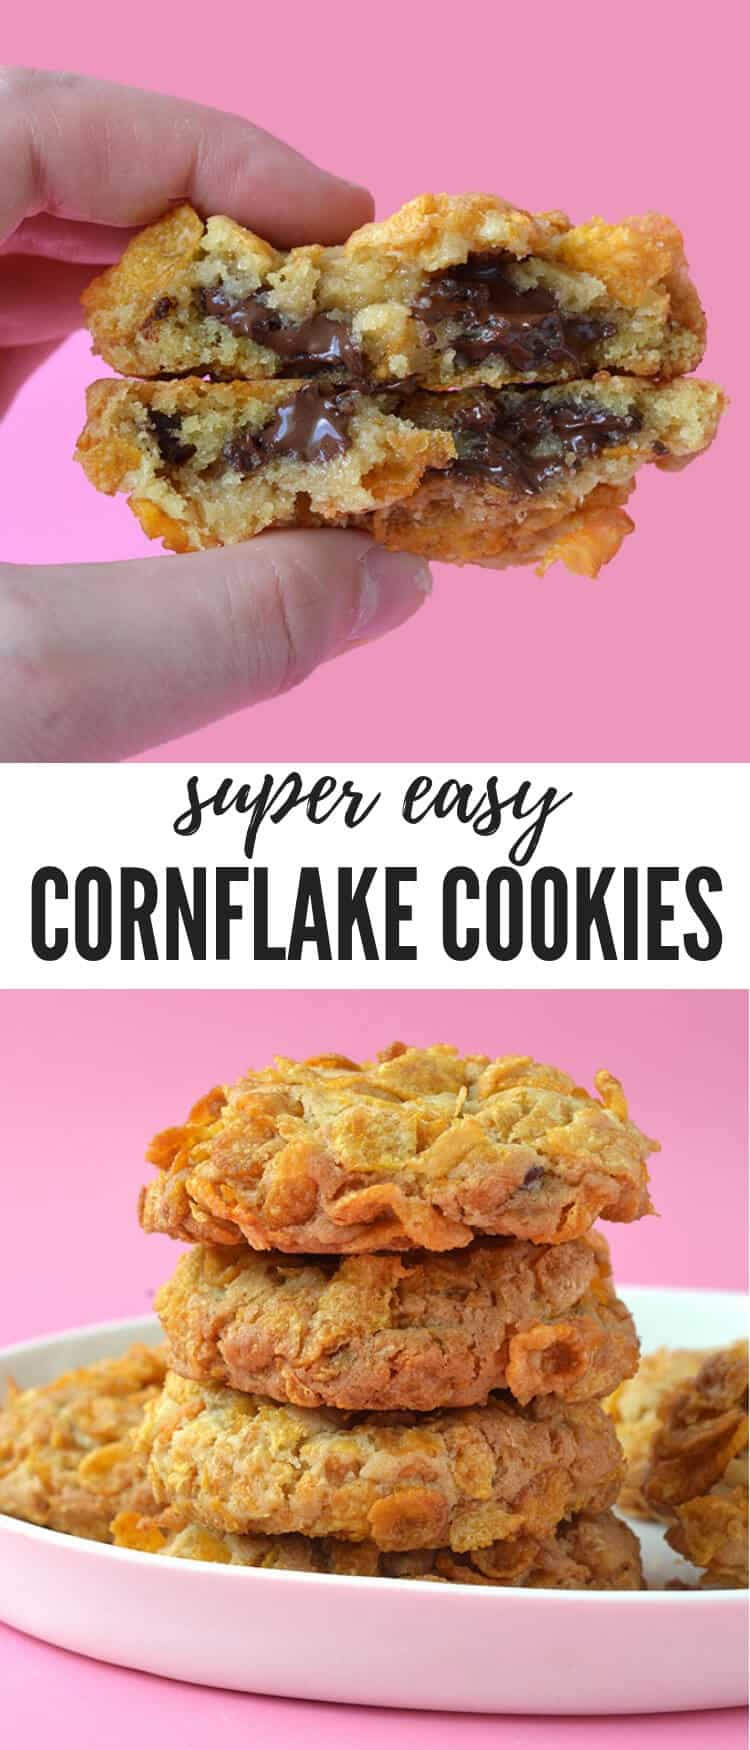 You'll love these thick and chewy Cornflake Cookies. Buttery cookie dough loaded with chocolate chips, rolled in crunchy Cornflakes and baked until golden and crisp. Recipe from sweetestmenu.com #cornflakes #cookies #cookie #chocolatechips